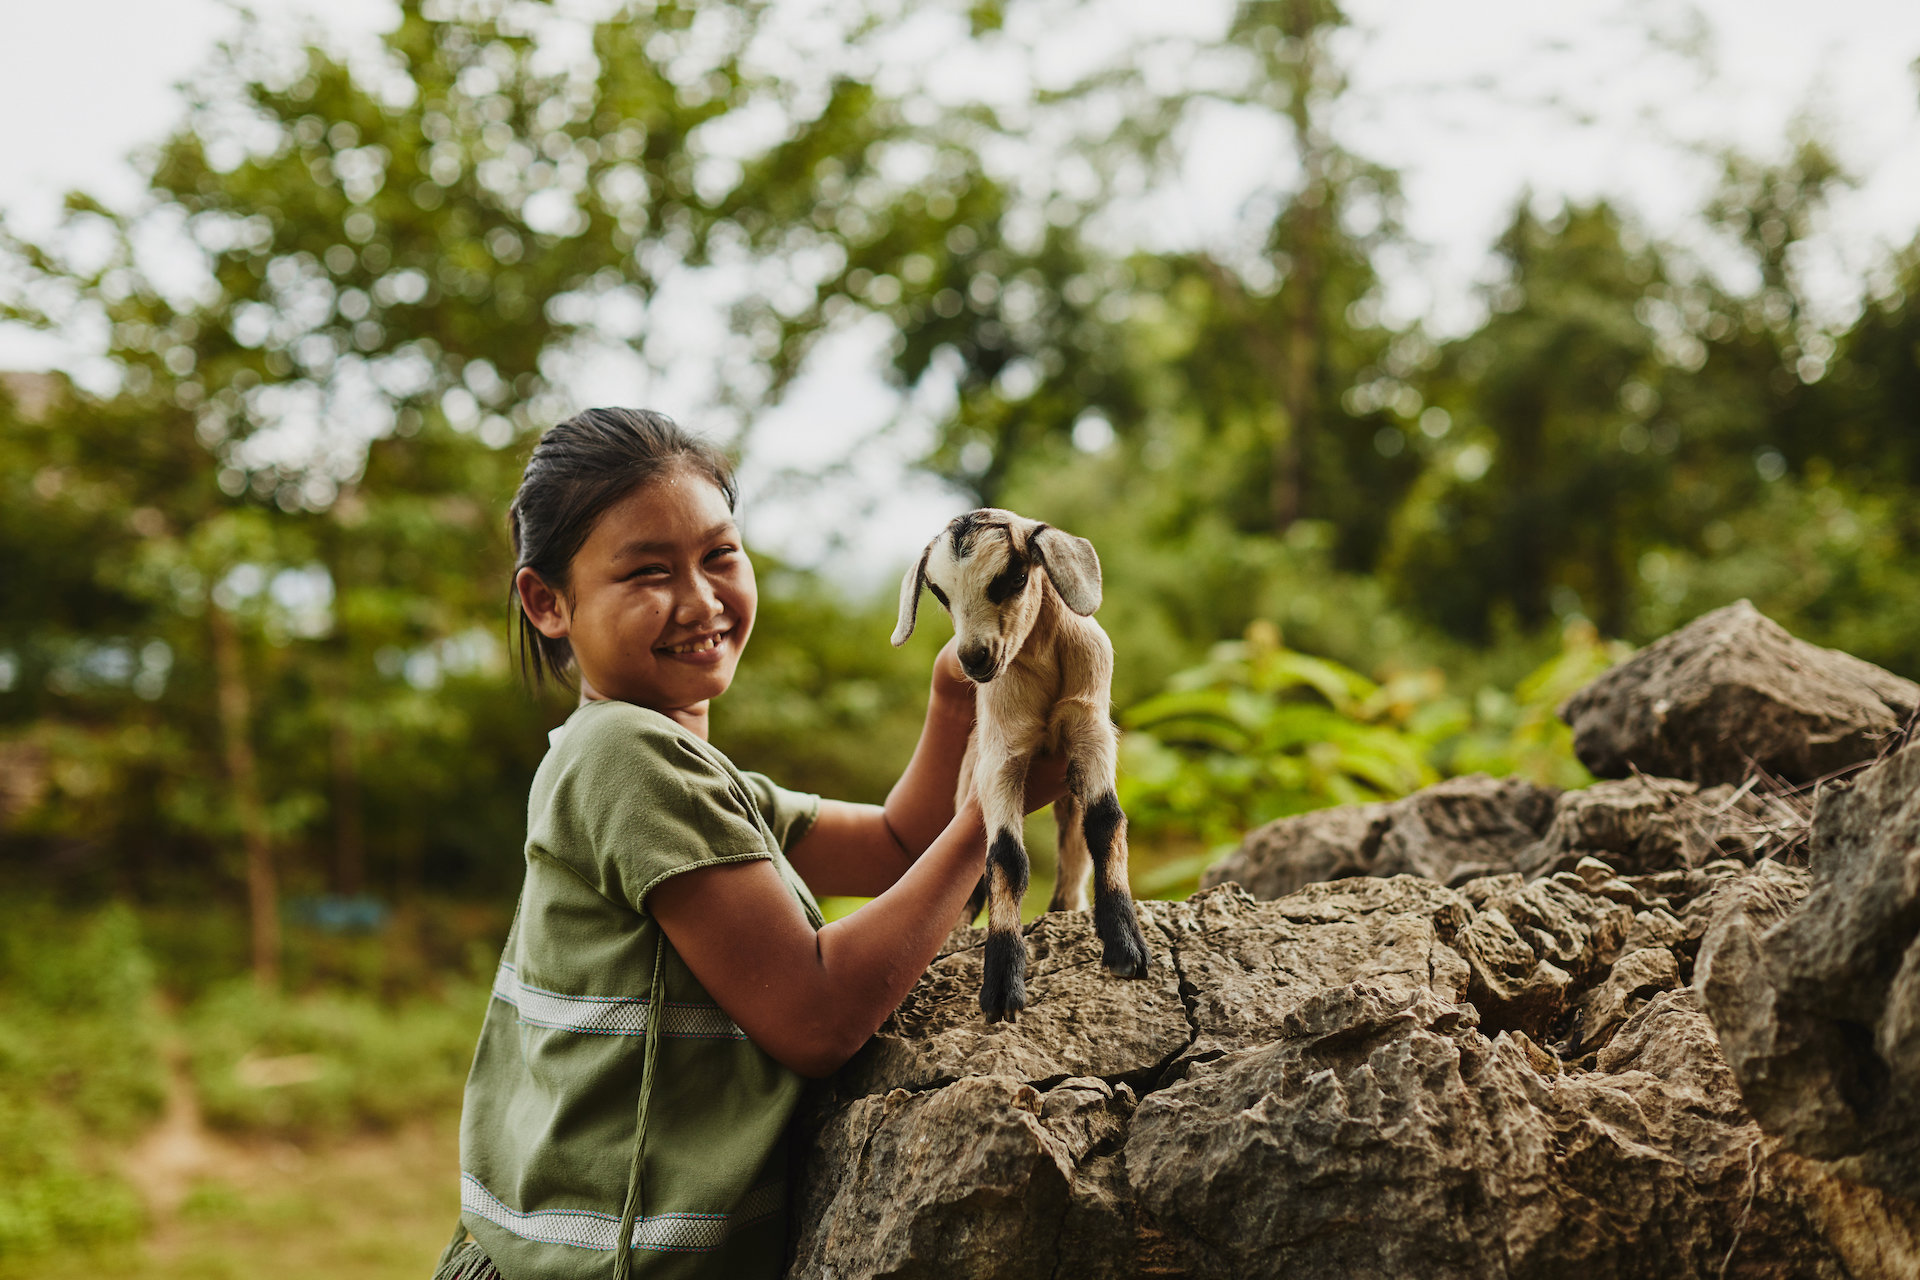 A young Thai girl in a green top holds a baby goat on top of a large boulder.